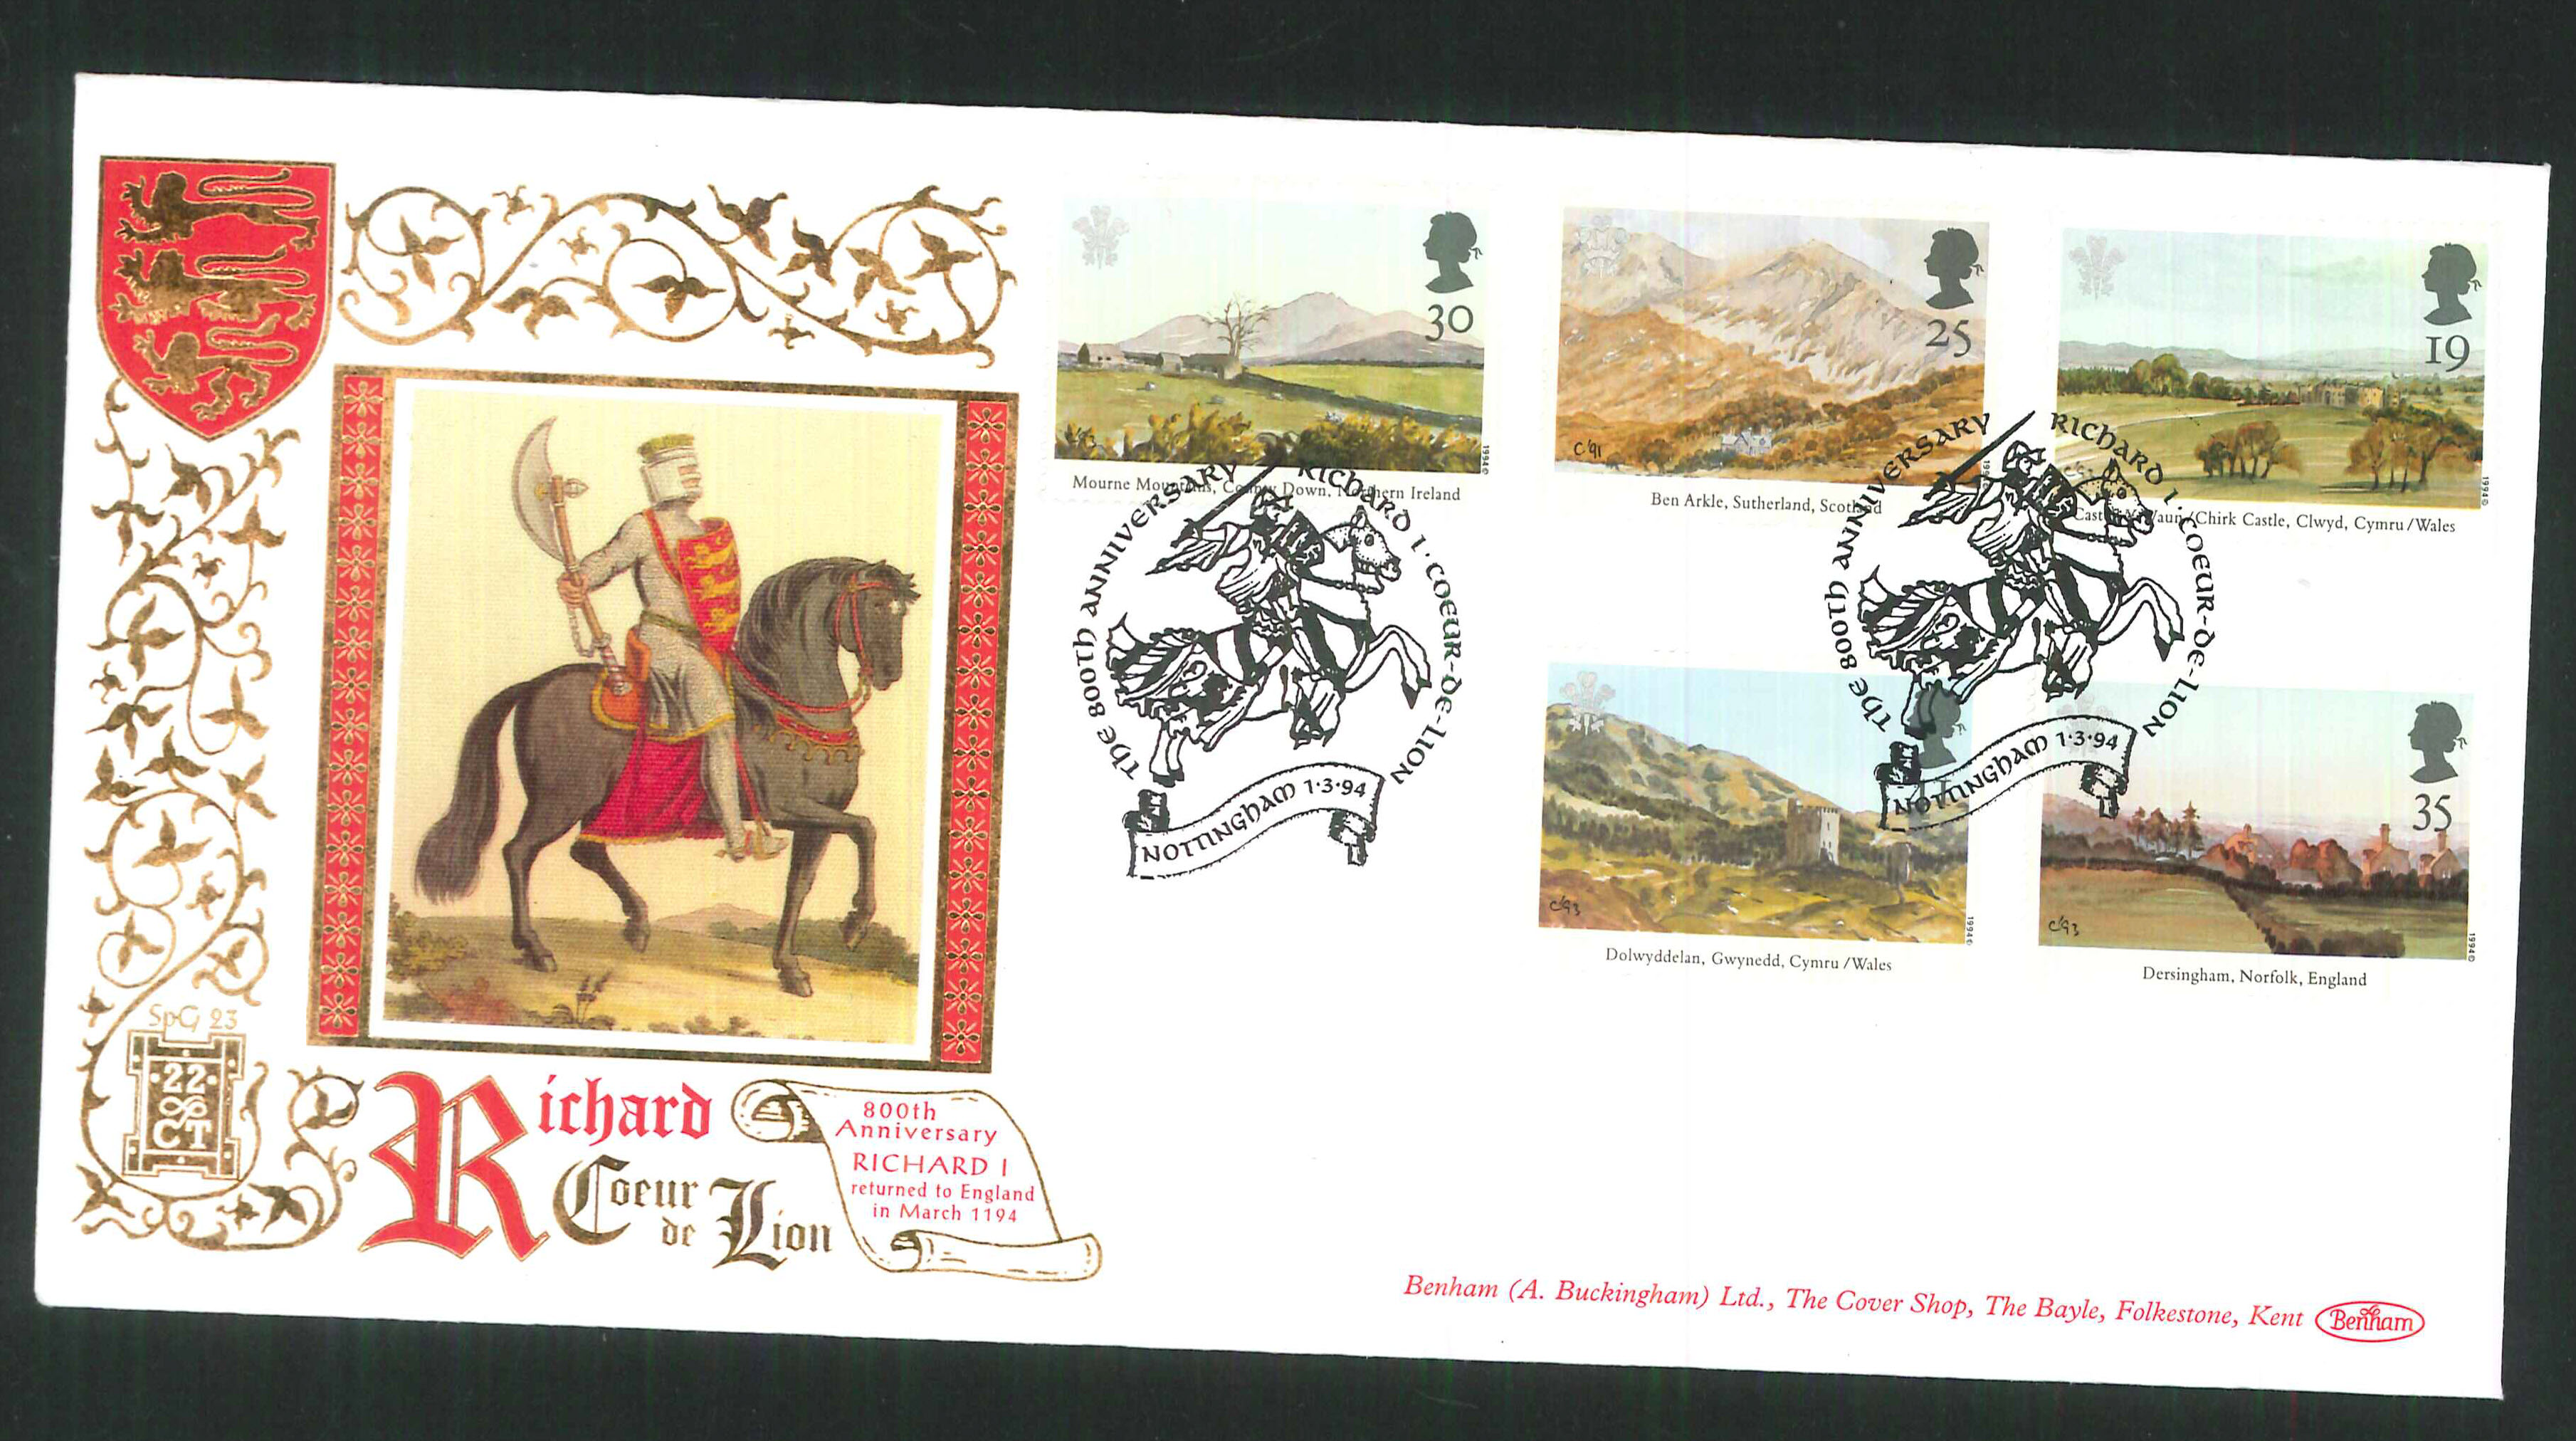 1994 -800th Anniversary of Richard I FDC Benham 22ct Gold SPG Nottingham Postmark